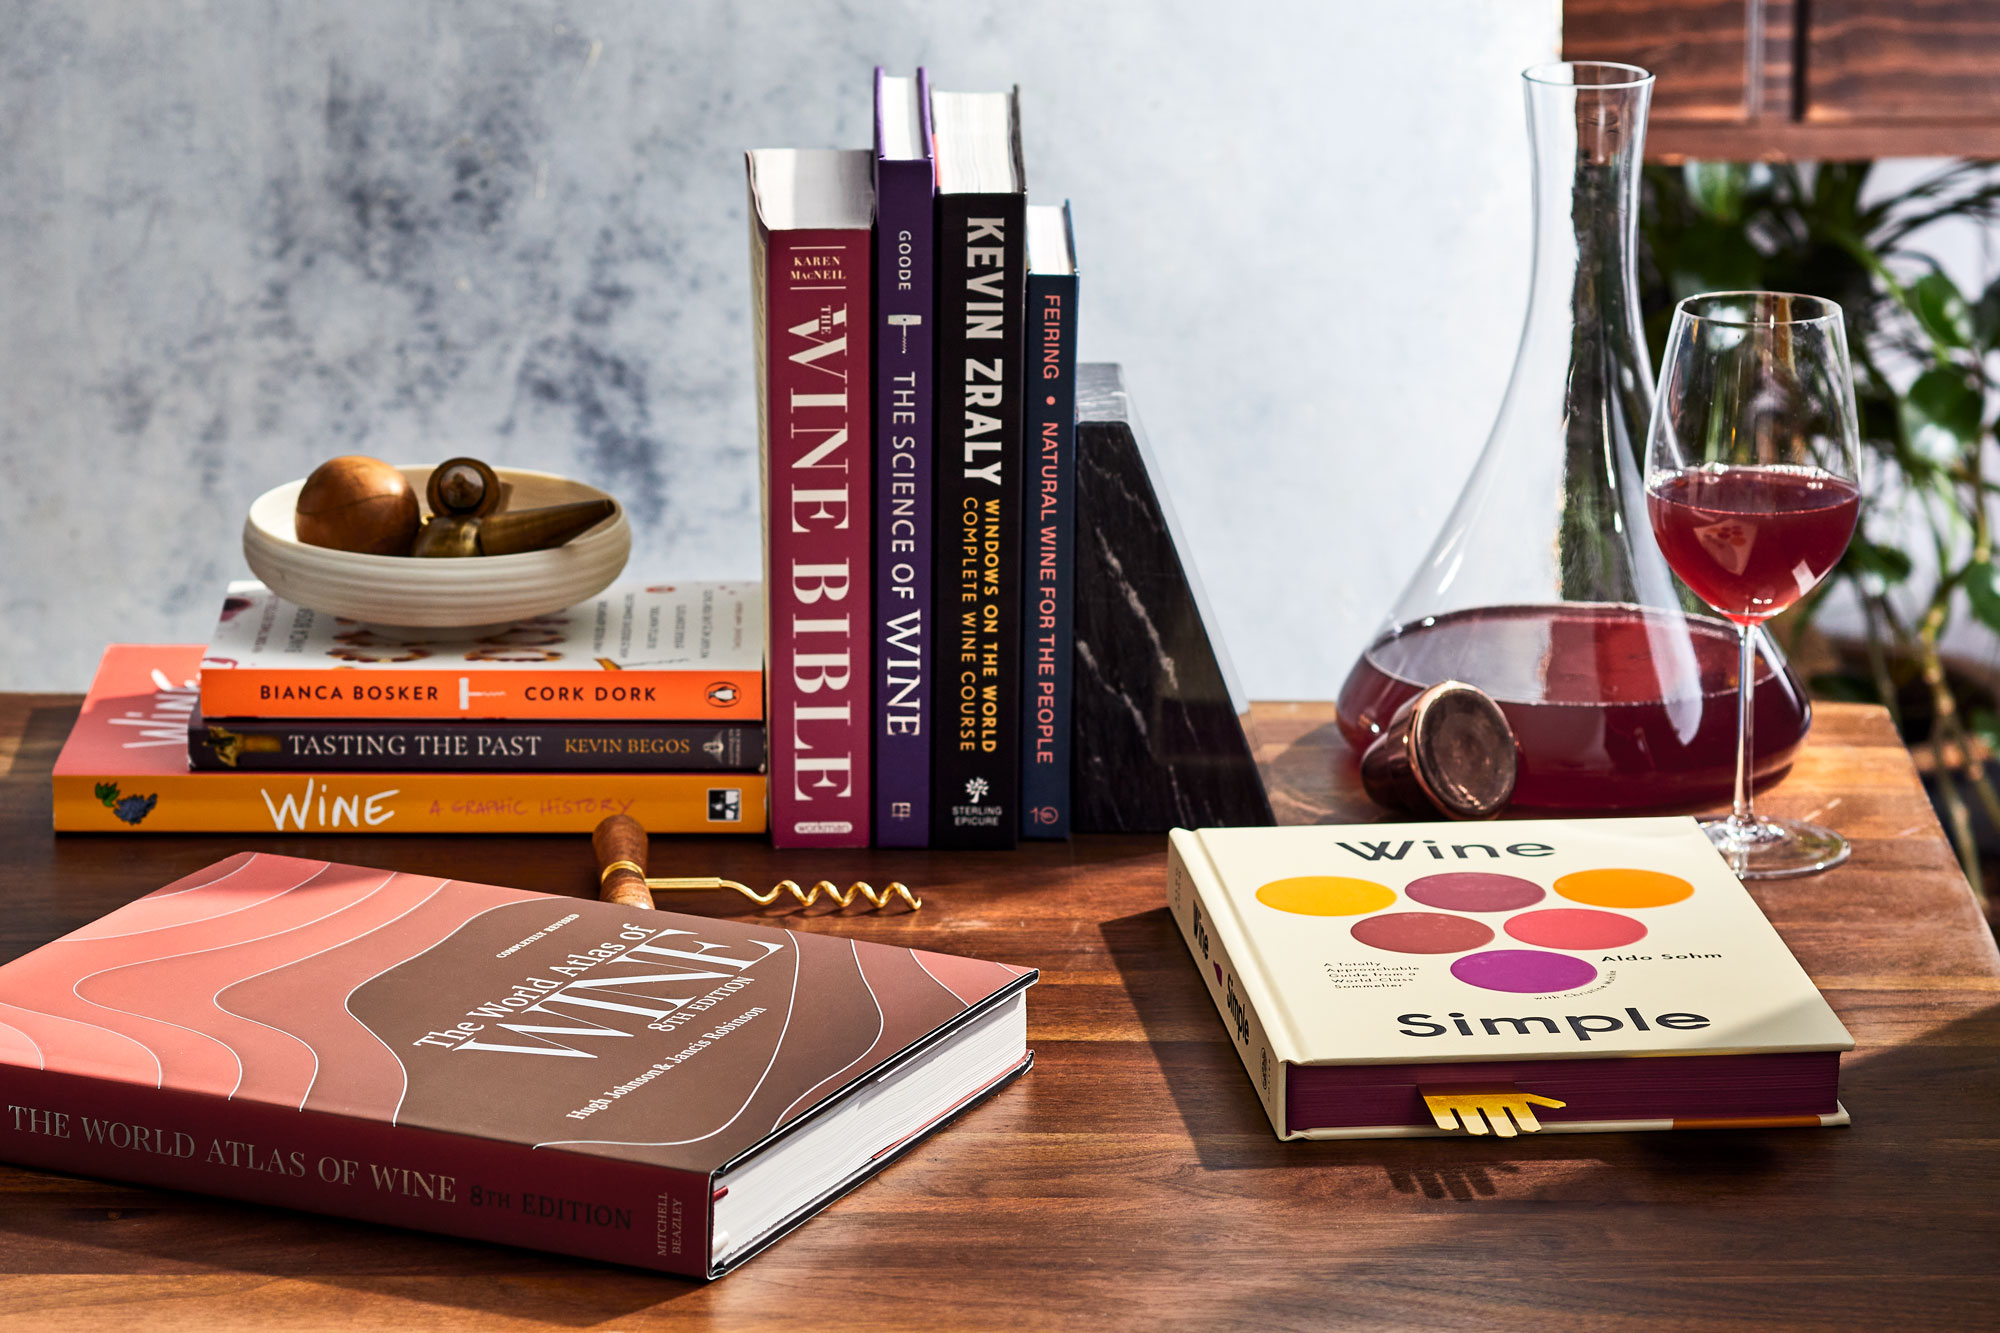 Best Wine Books for Holiday Gifts